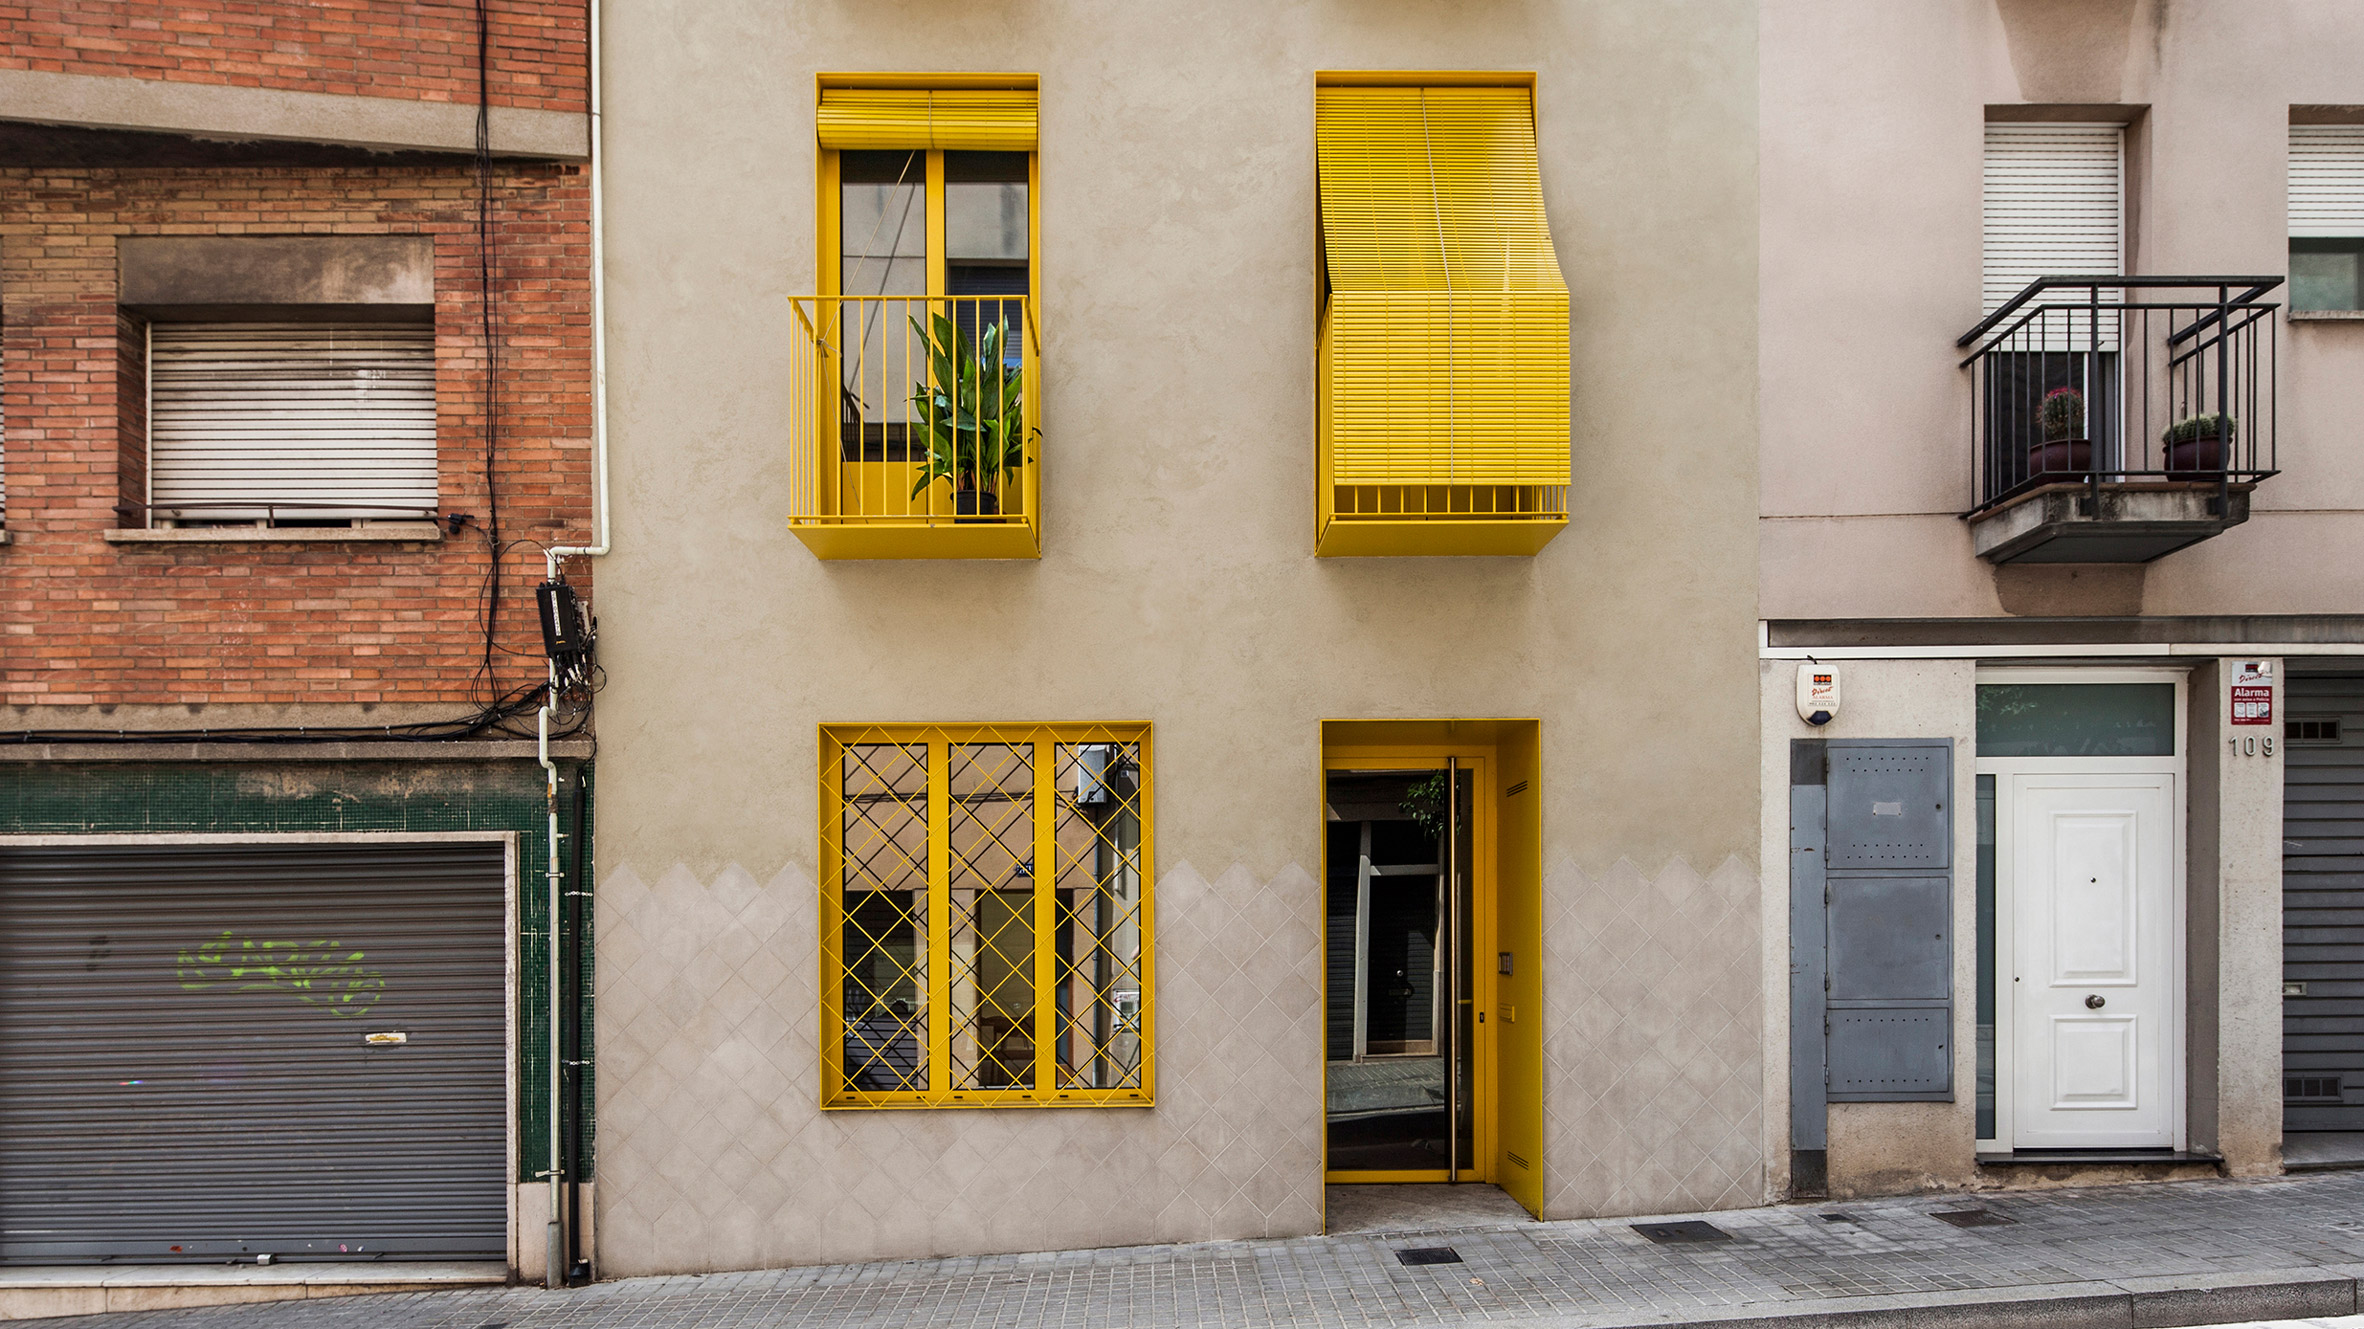 Barcelona apartment building with bright yellow balconies